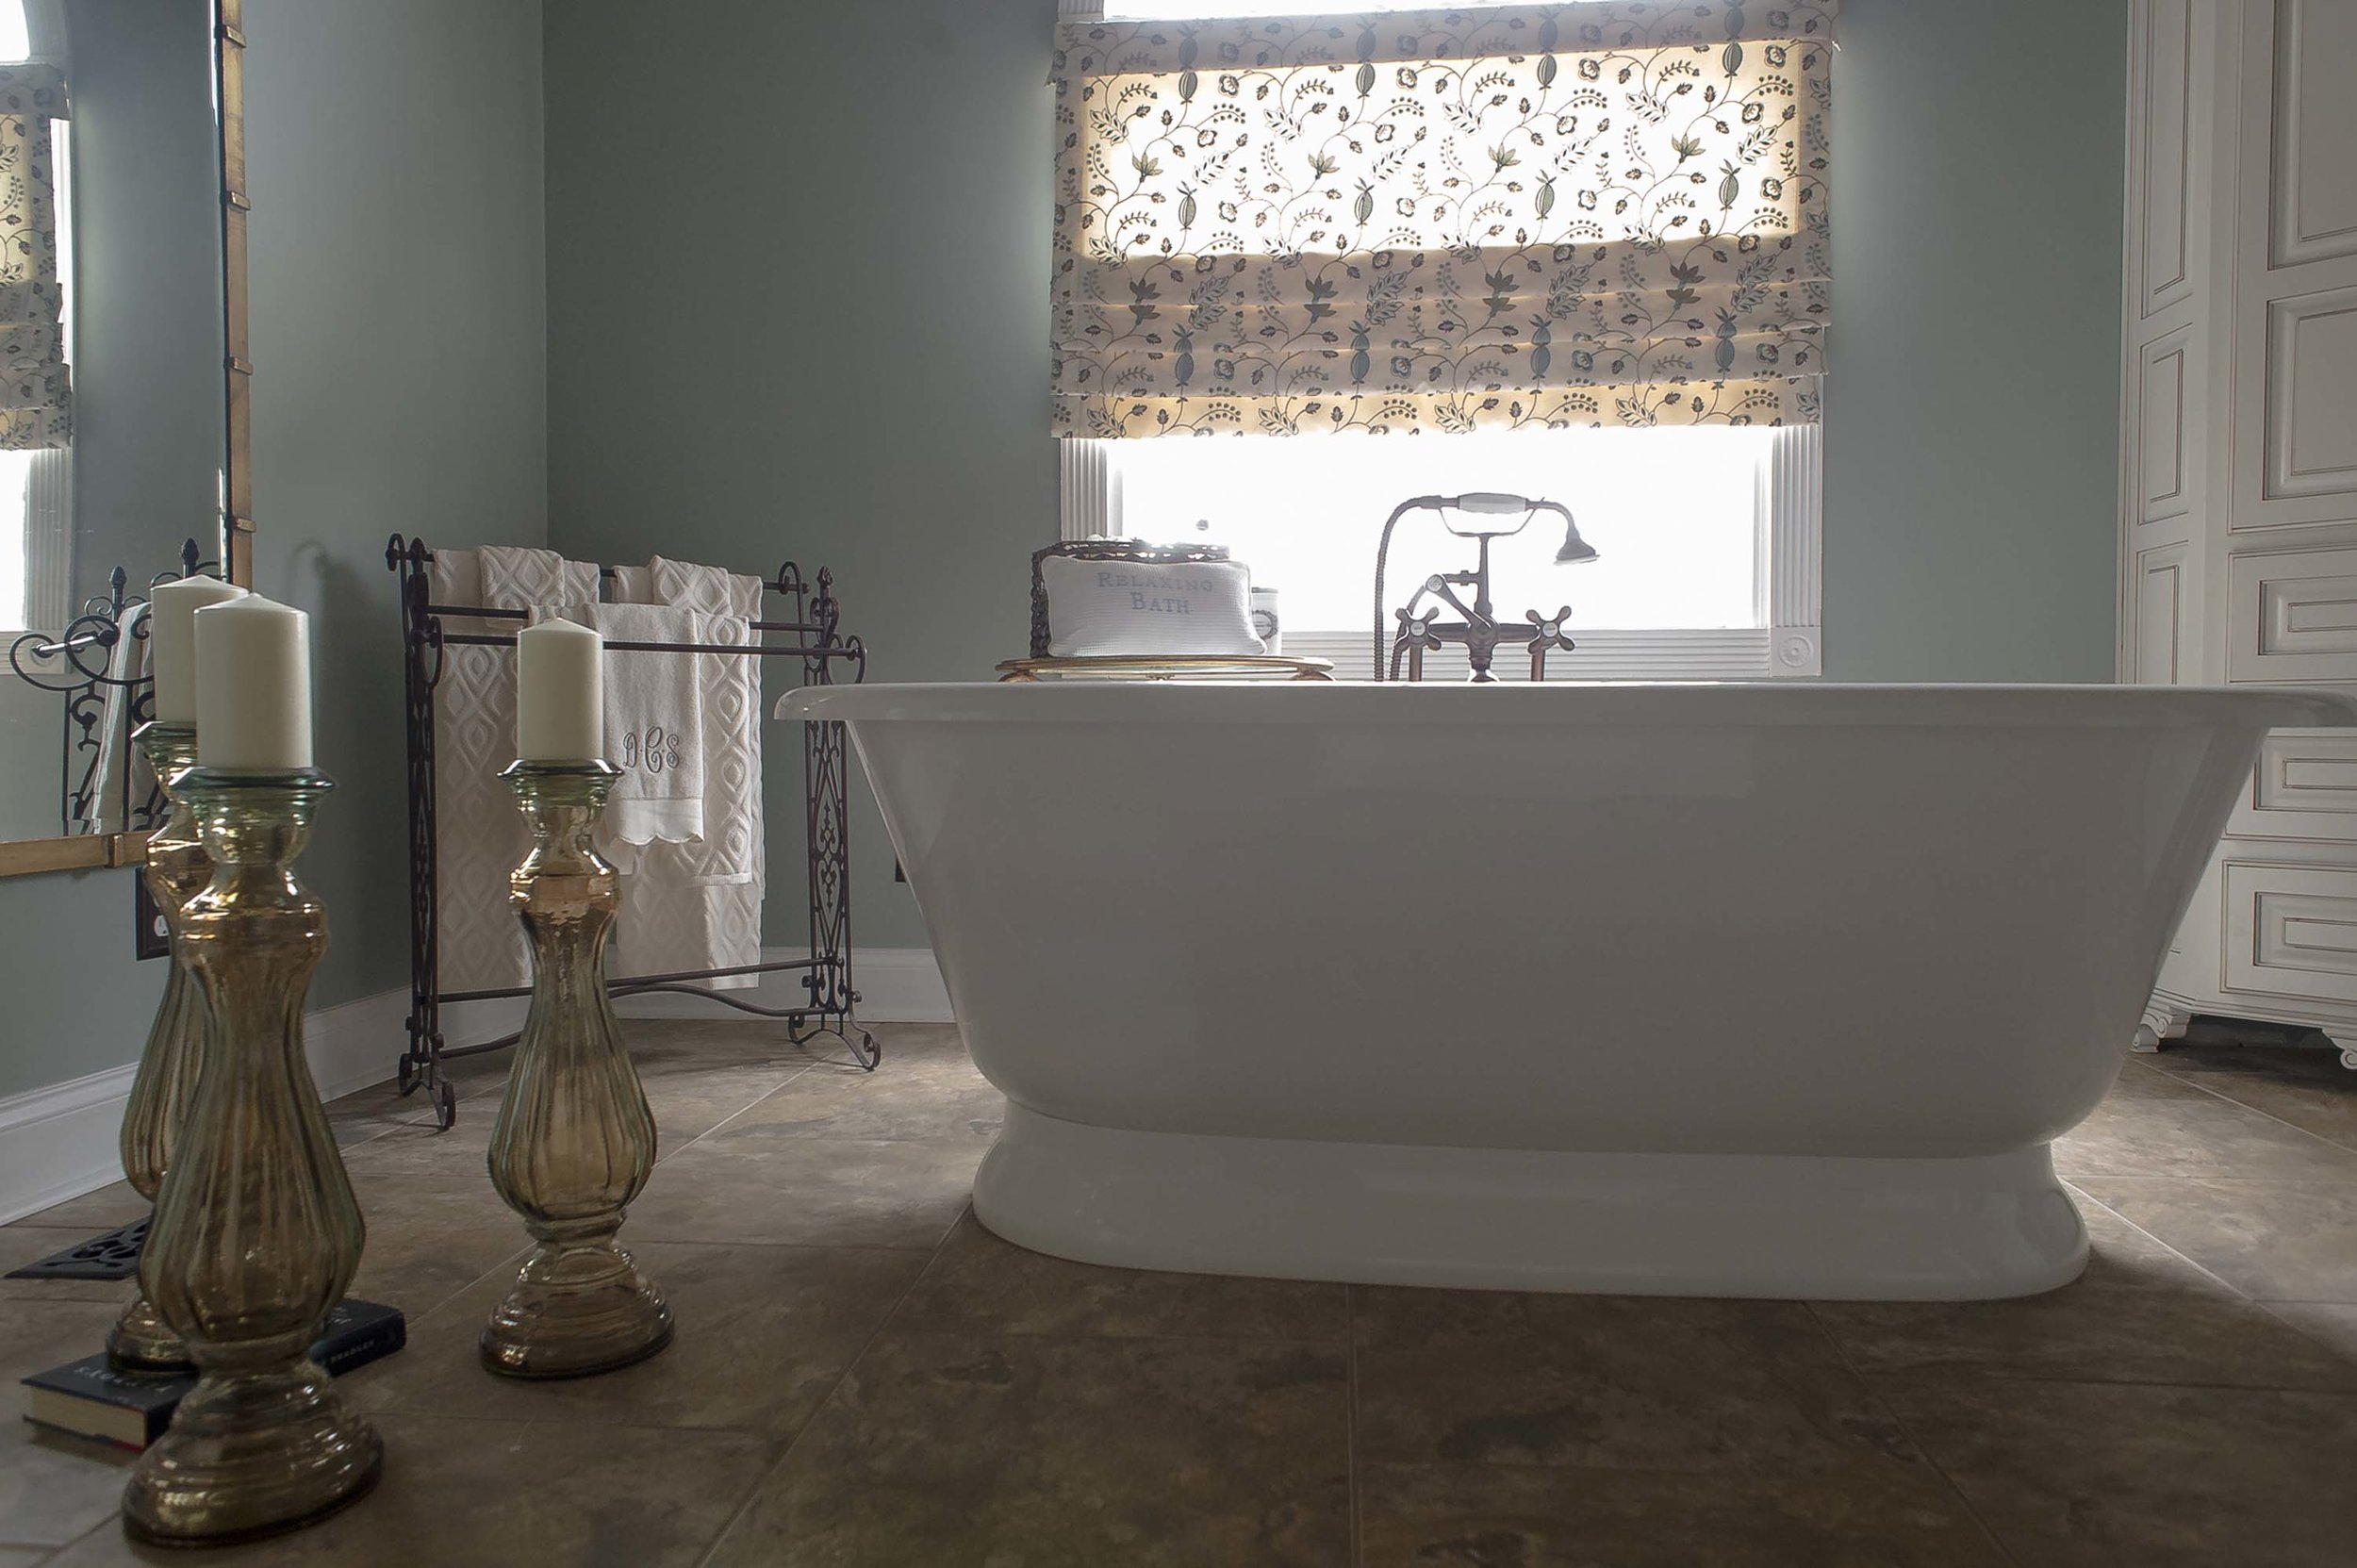 Bathroom with white bathtub, wax candles on the candle holder